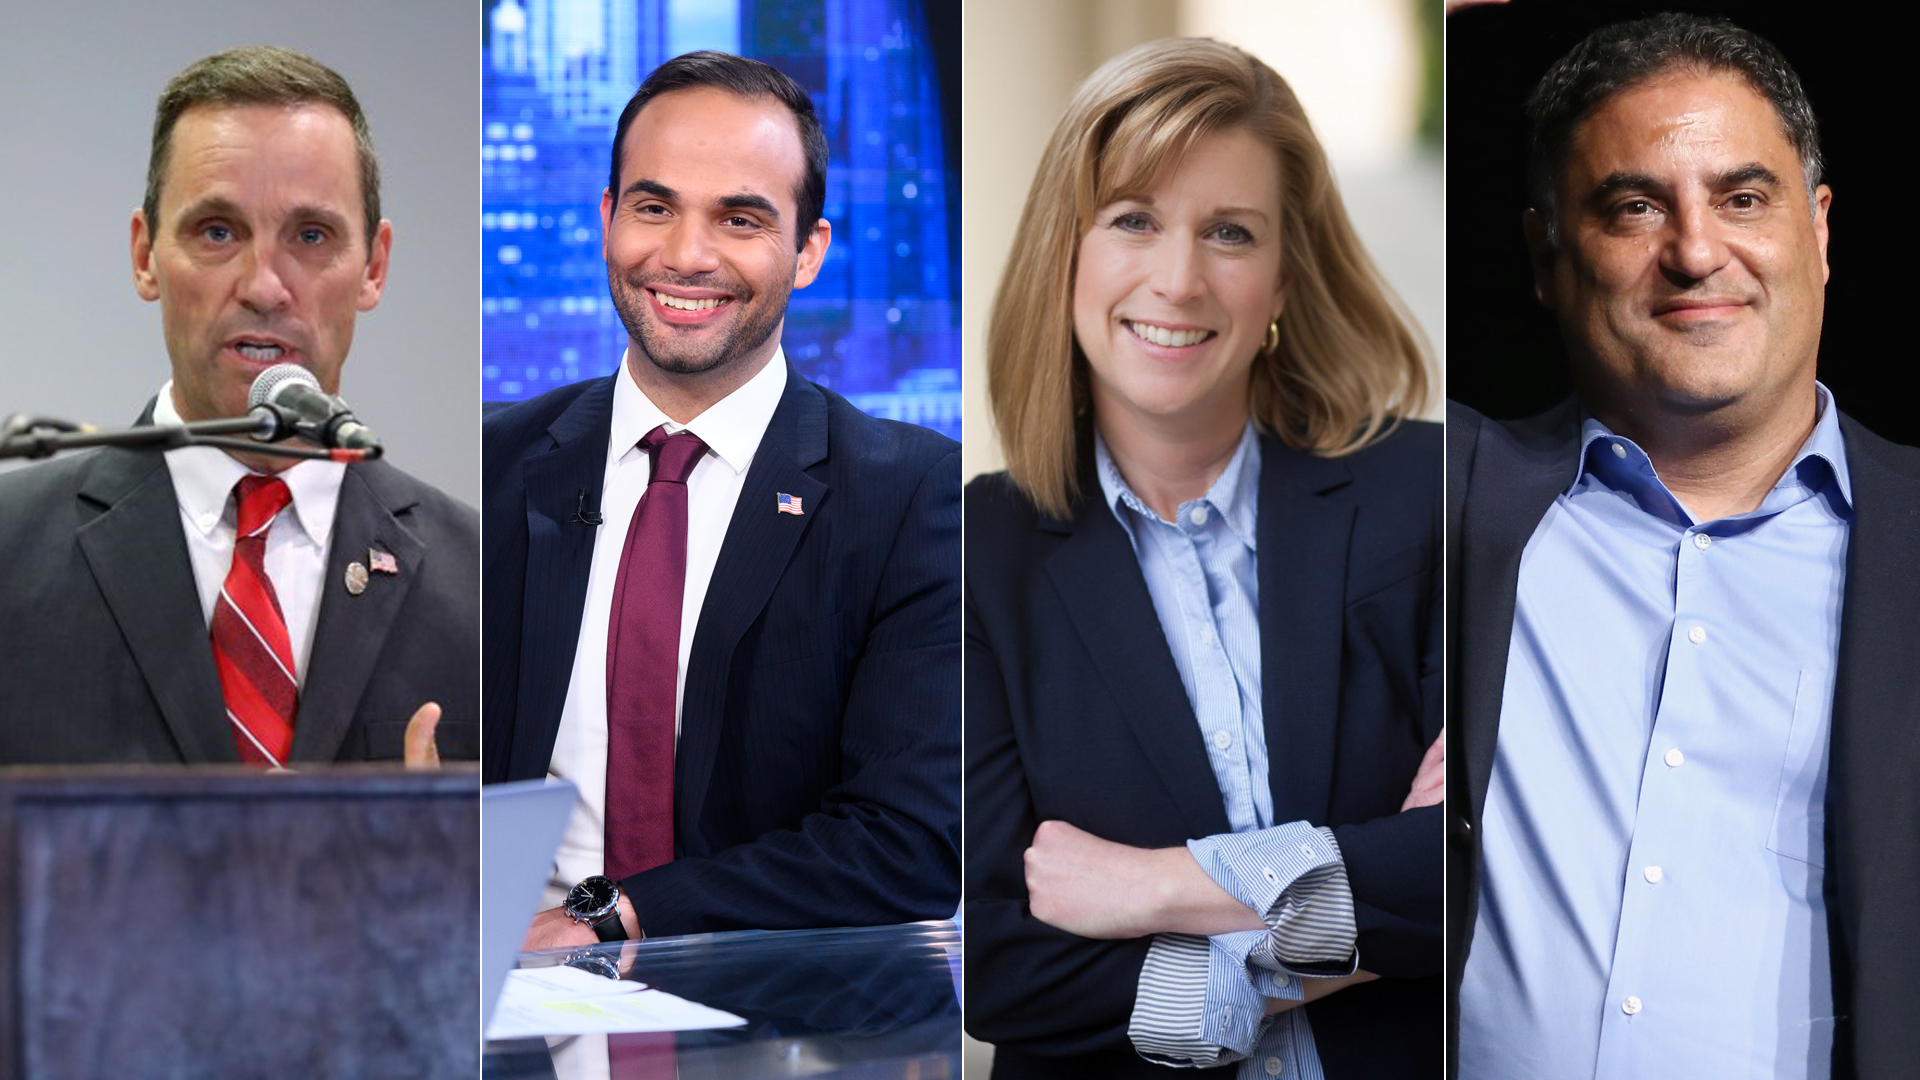 (Left to right) Steve Knight, George Papadopoulos, Christy Smith and Cenk Uygur are shown in file images. (Getty Images and Los Angeles Times)